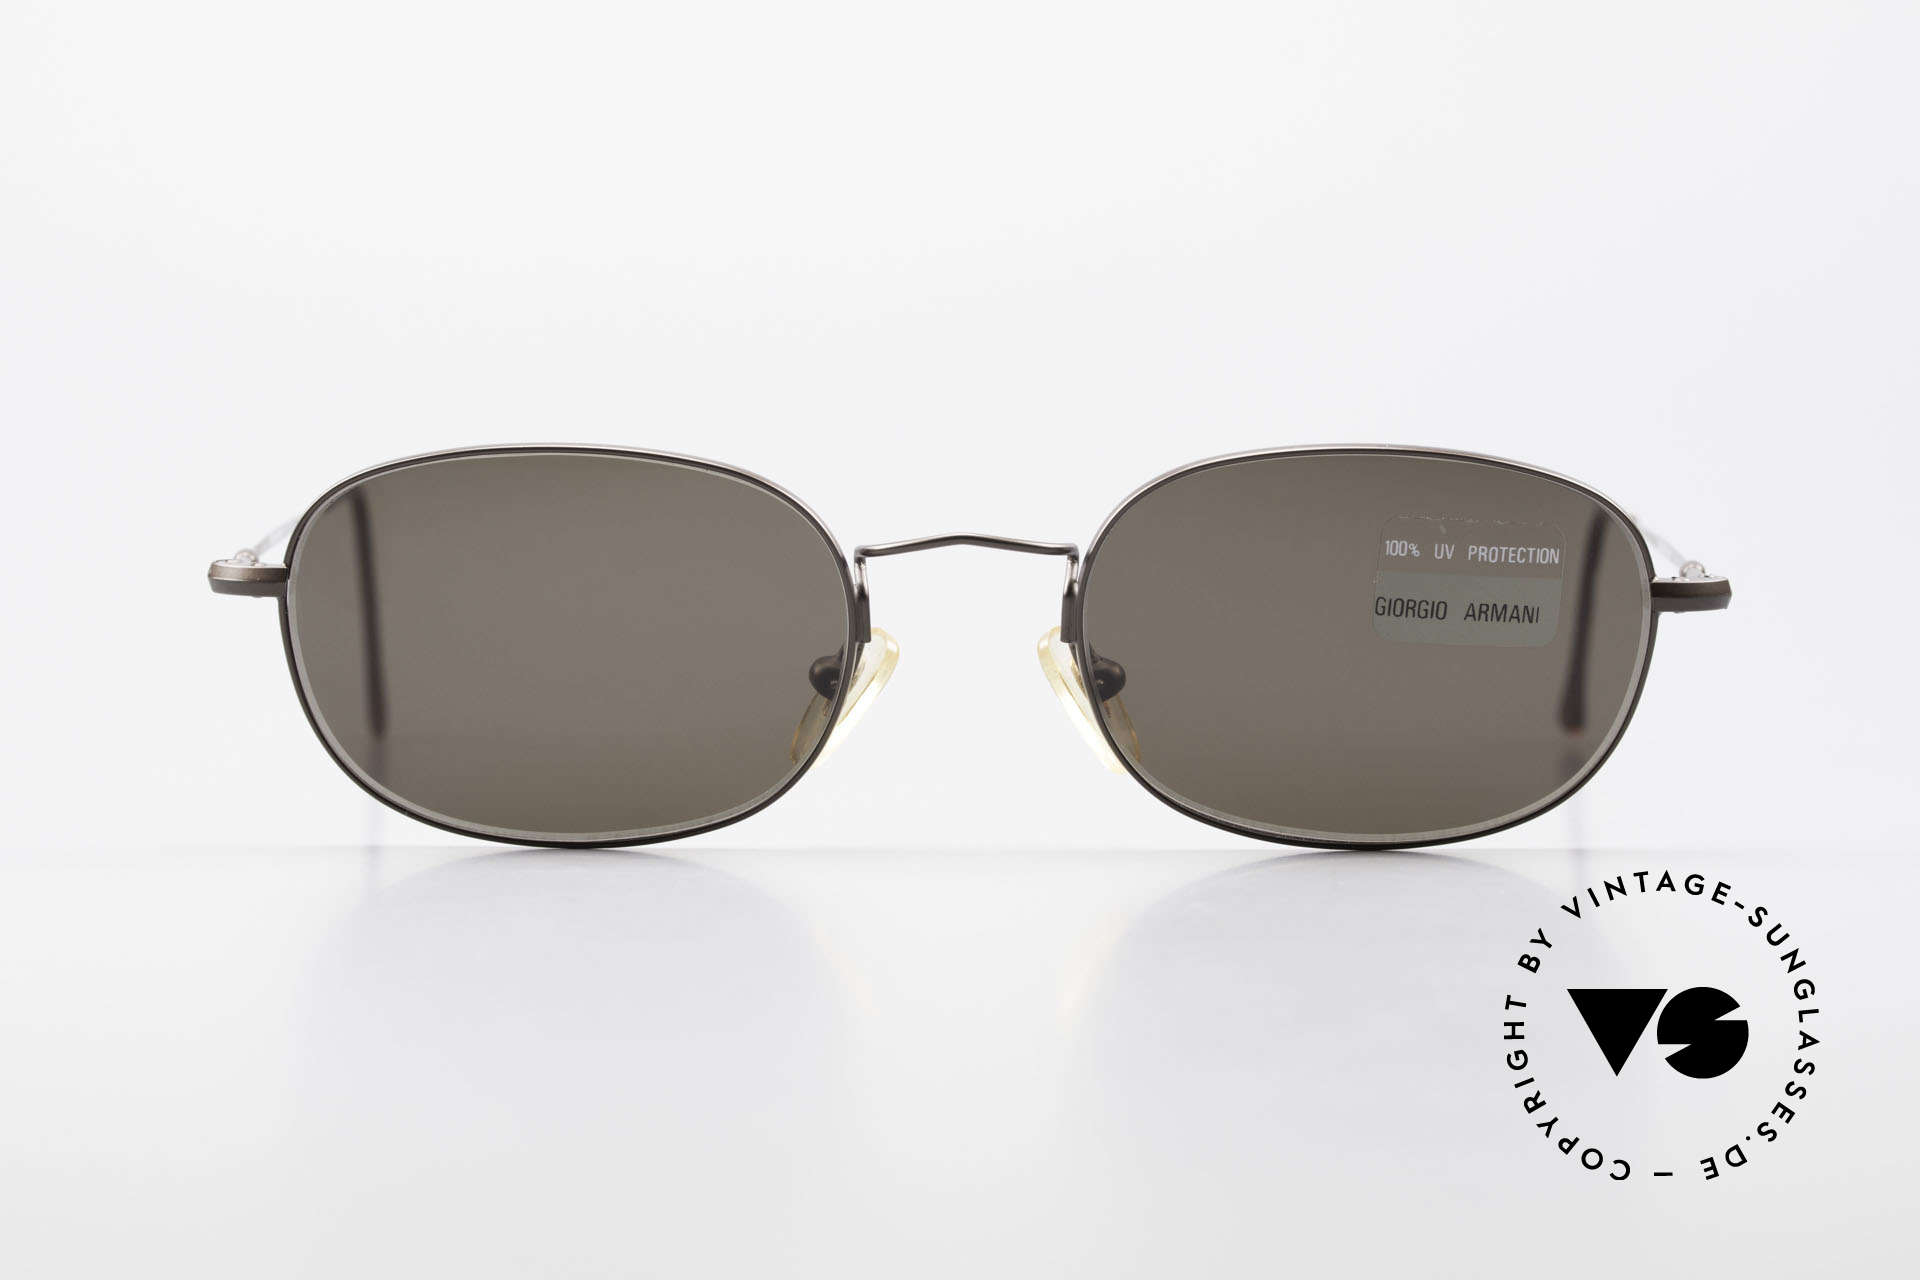 Giorgio Armani 234 Classic Designer Shades 80's, discreet metal frame in tangible premium-quality, Made for Men and Women